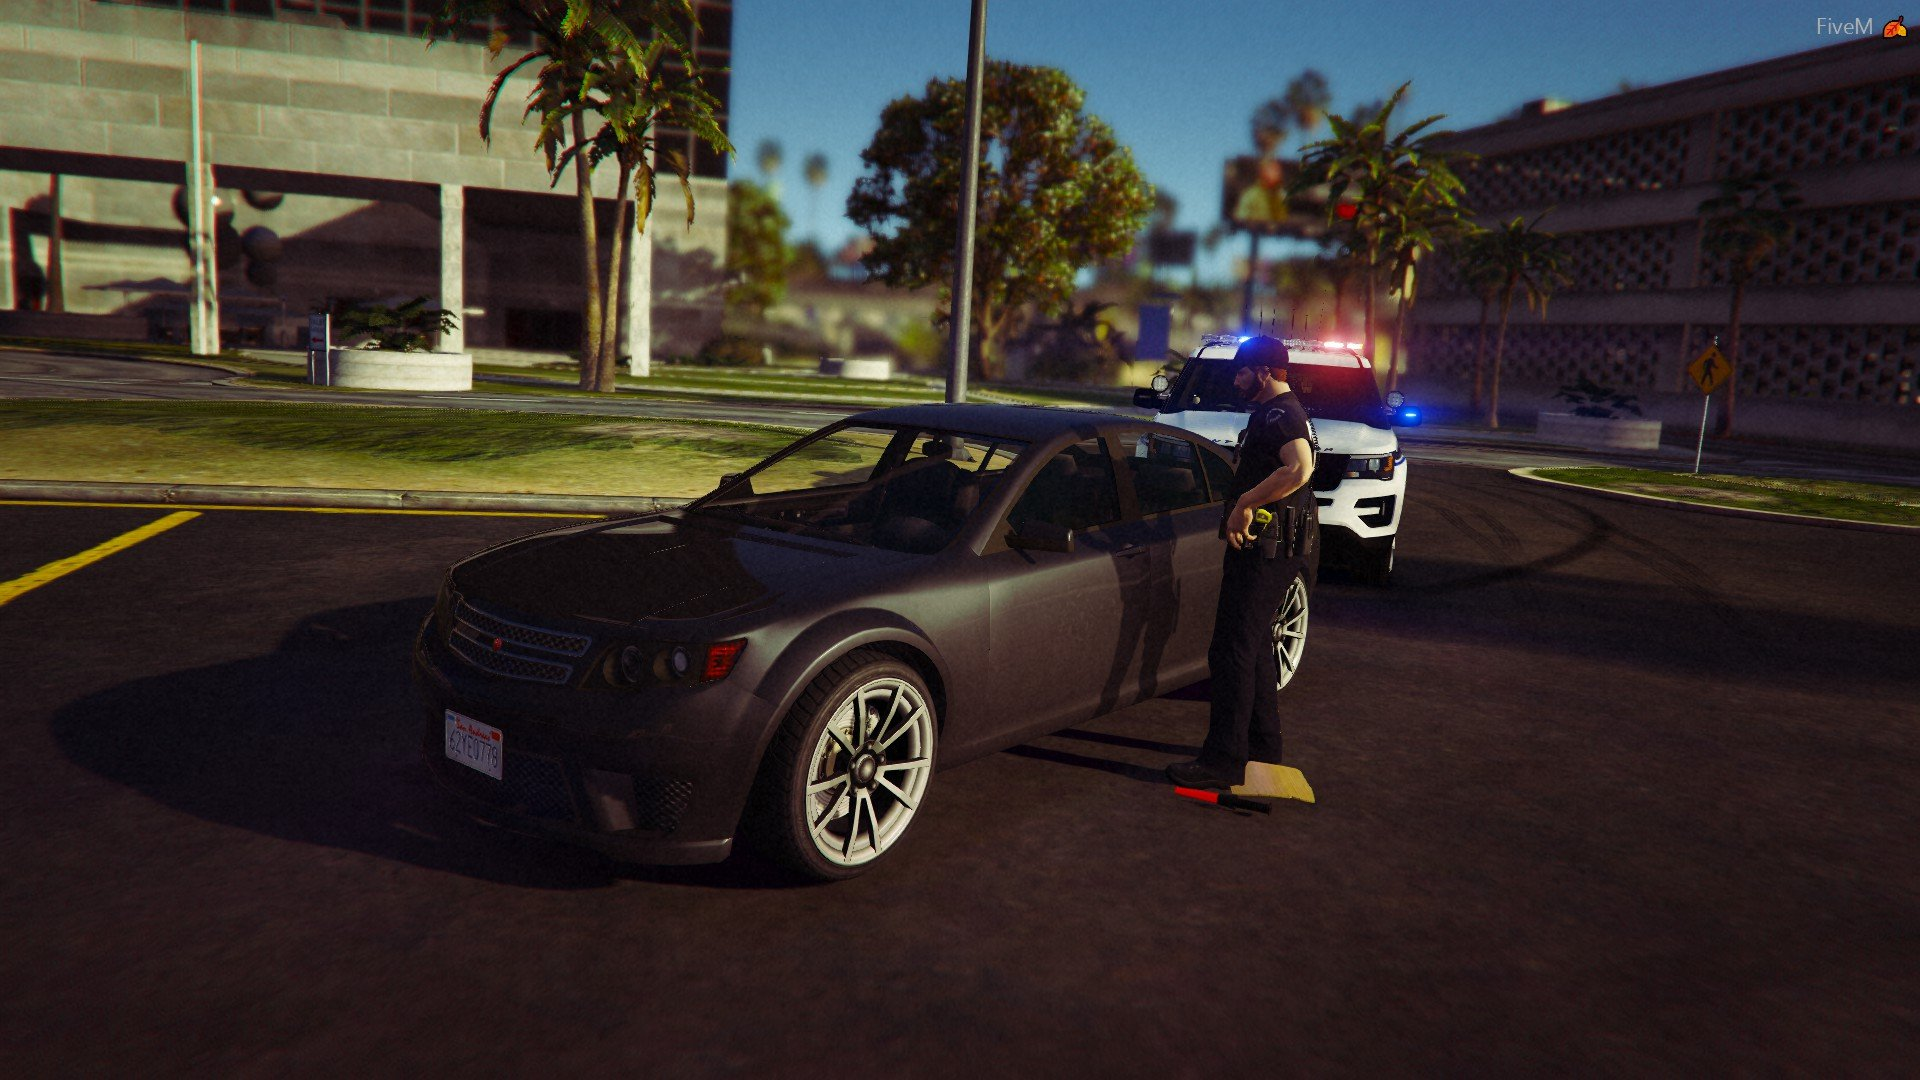 Staged traffic stop in SADPS's server.